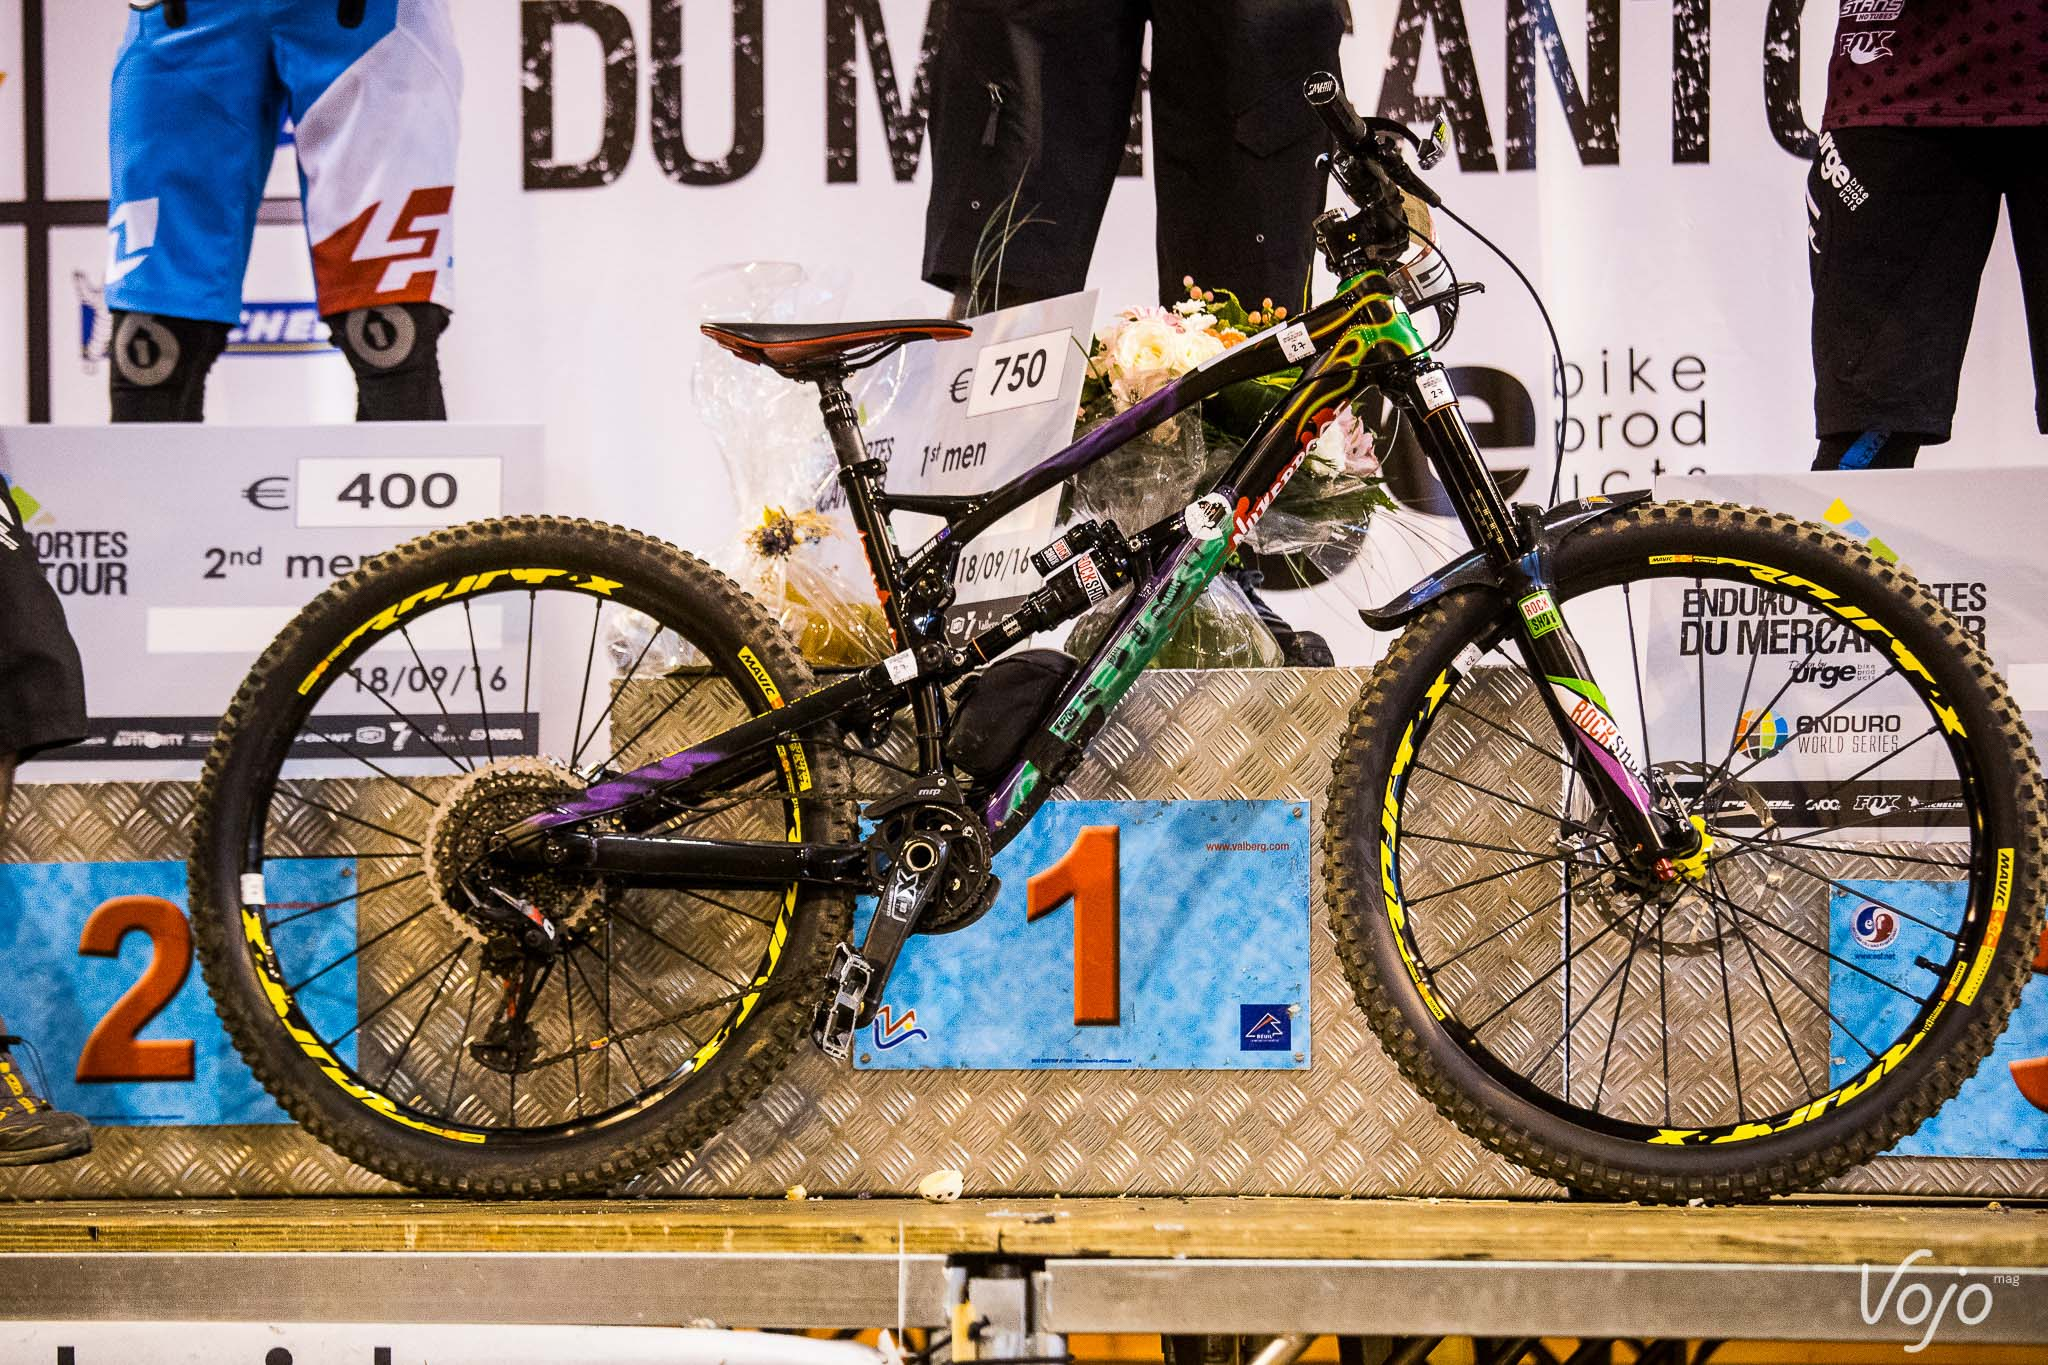 ews_valberg_sam_hill_podium_2016_copyright_vojomag-6-2